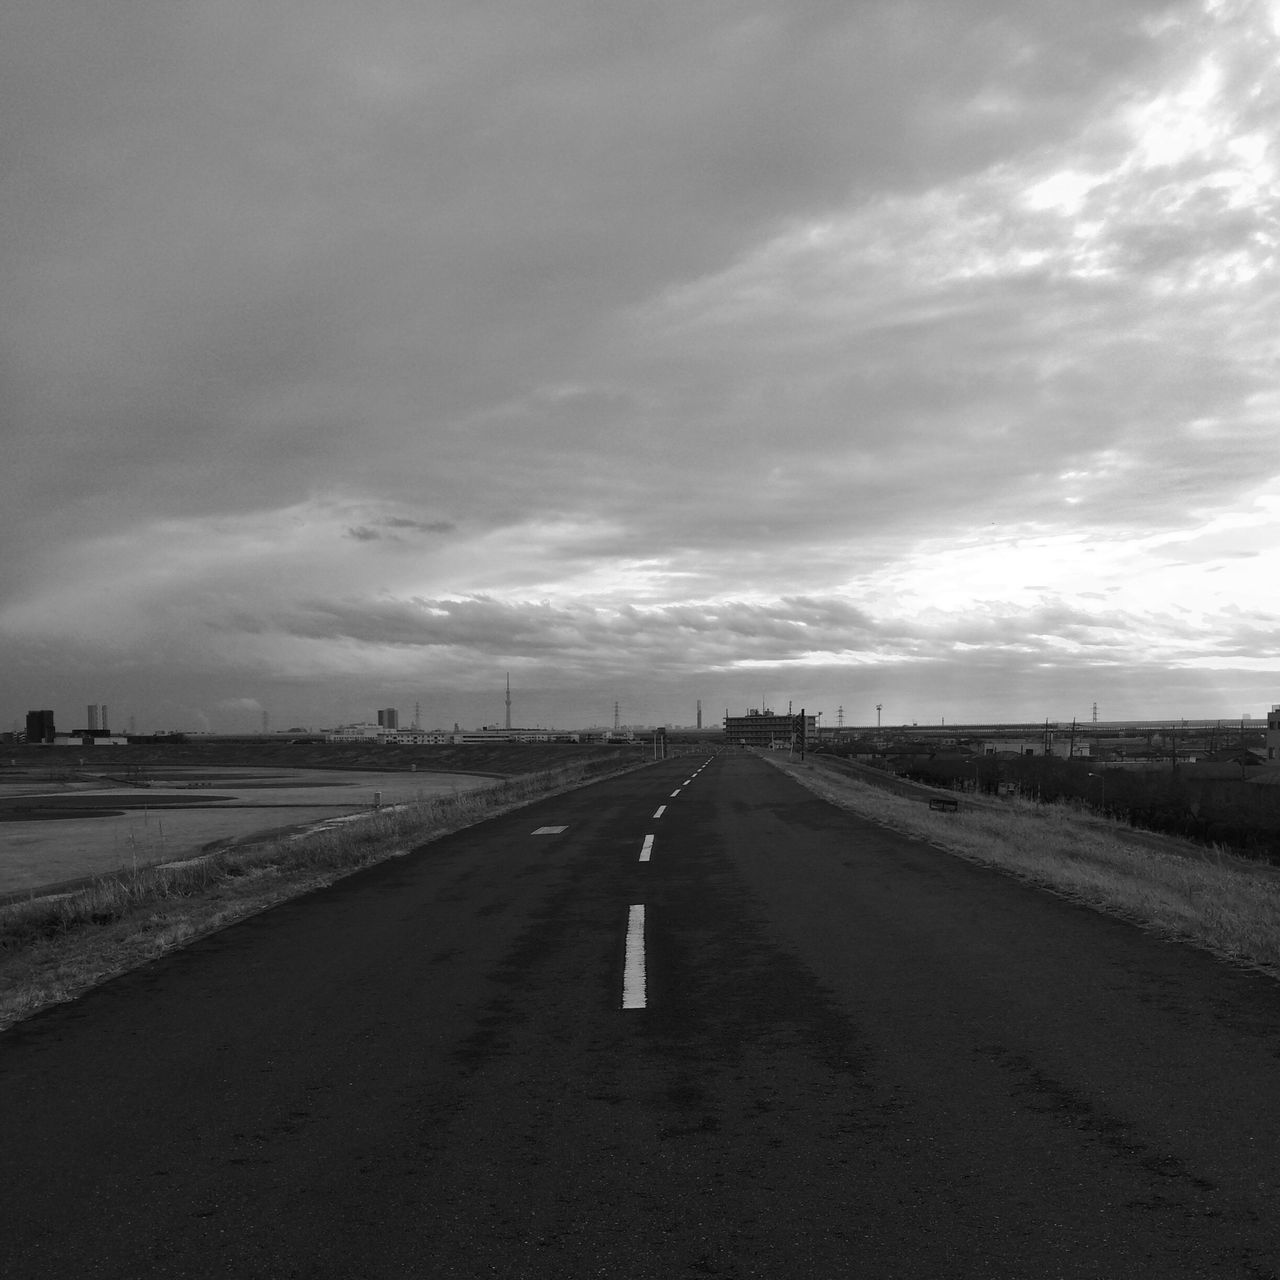 road, the way forward, diminishing perspective, cloud - sky, sky, transportation, street, outdoors, nature, landscape, scenics, no people, day, beauty in nature